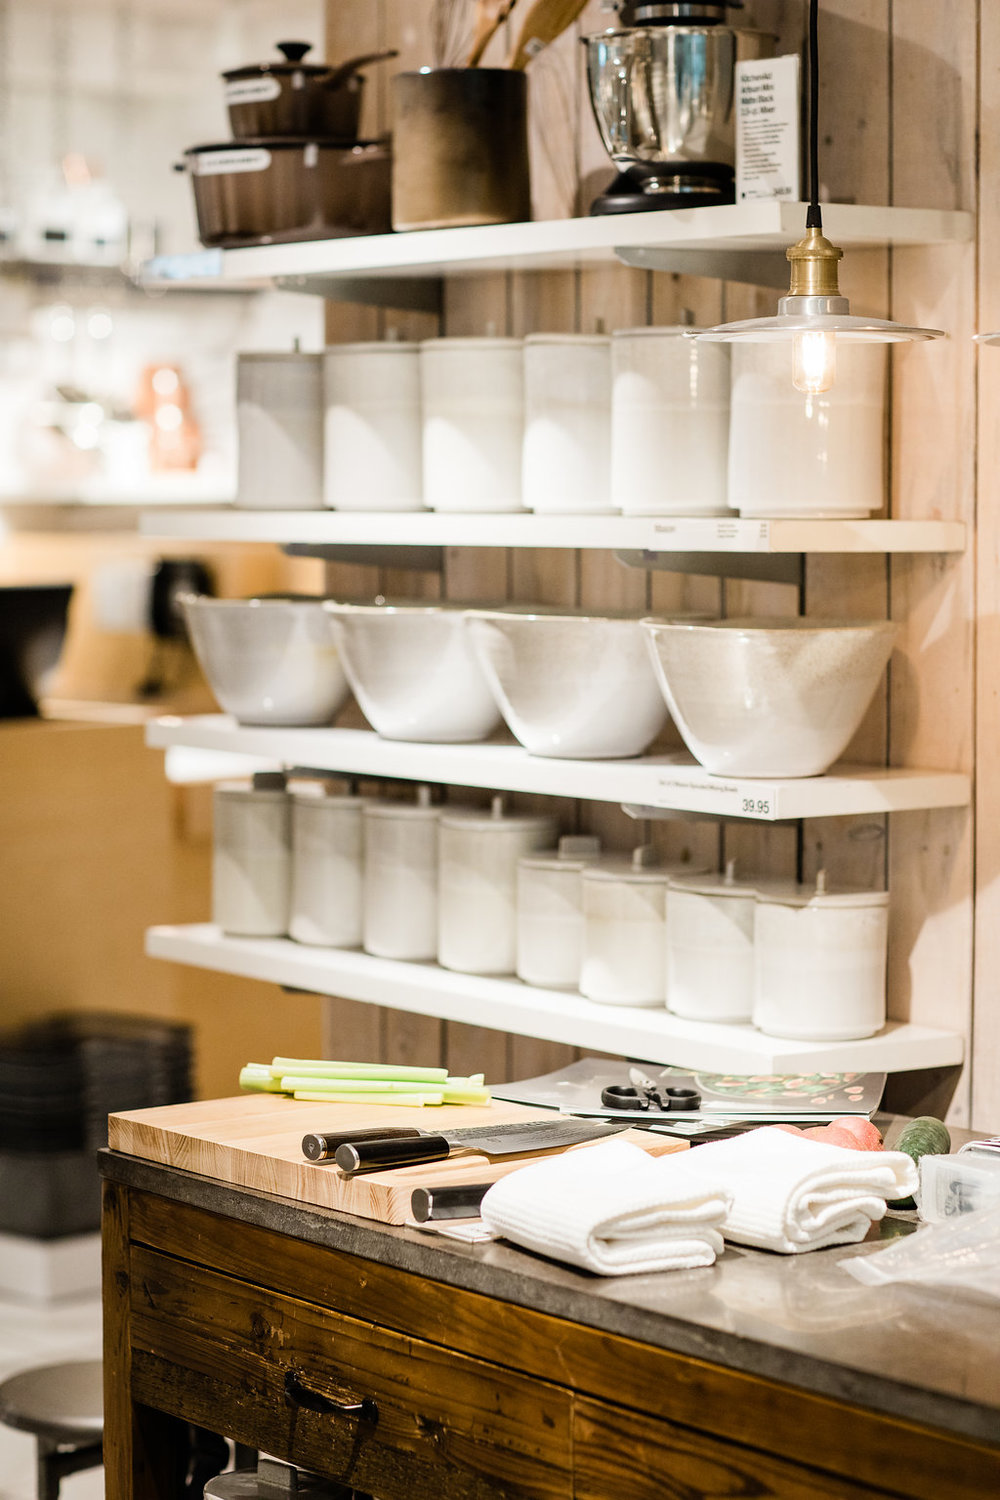 Crate+Barrel-59.jpg